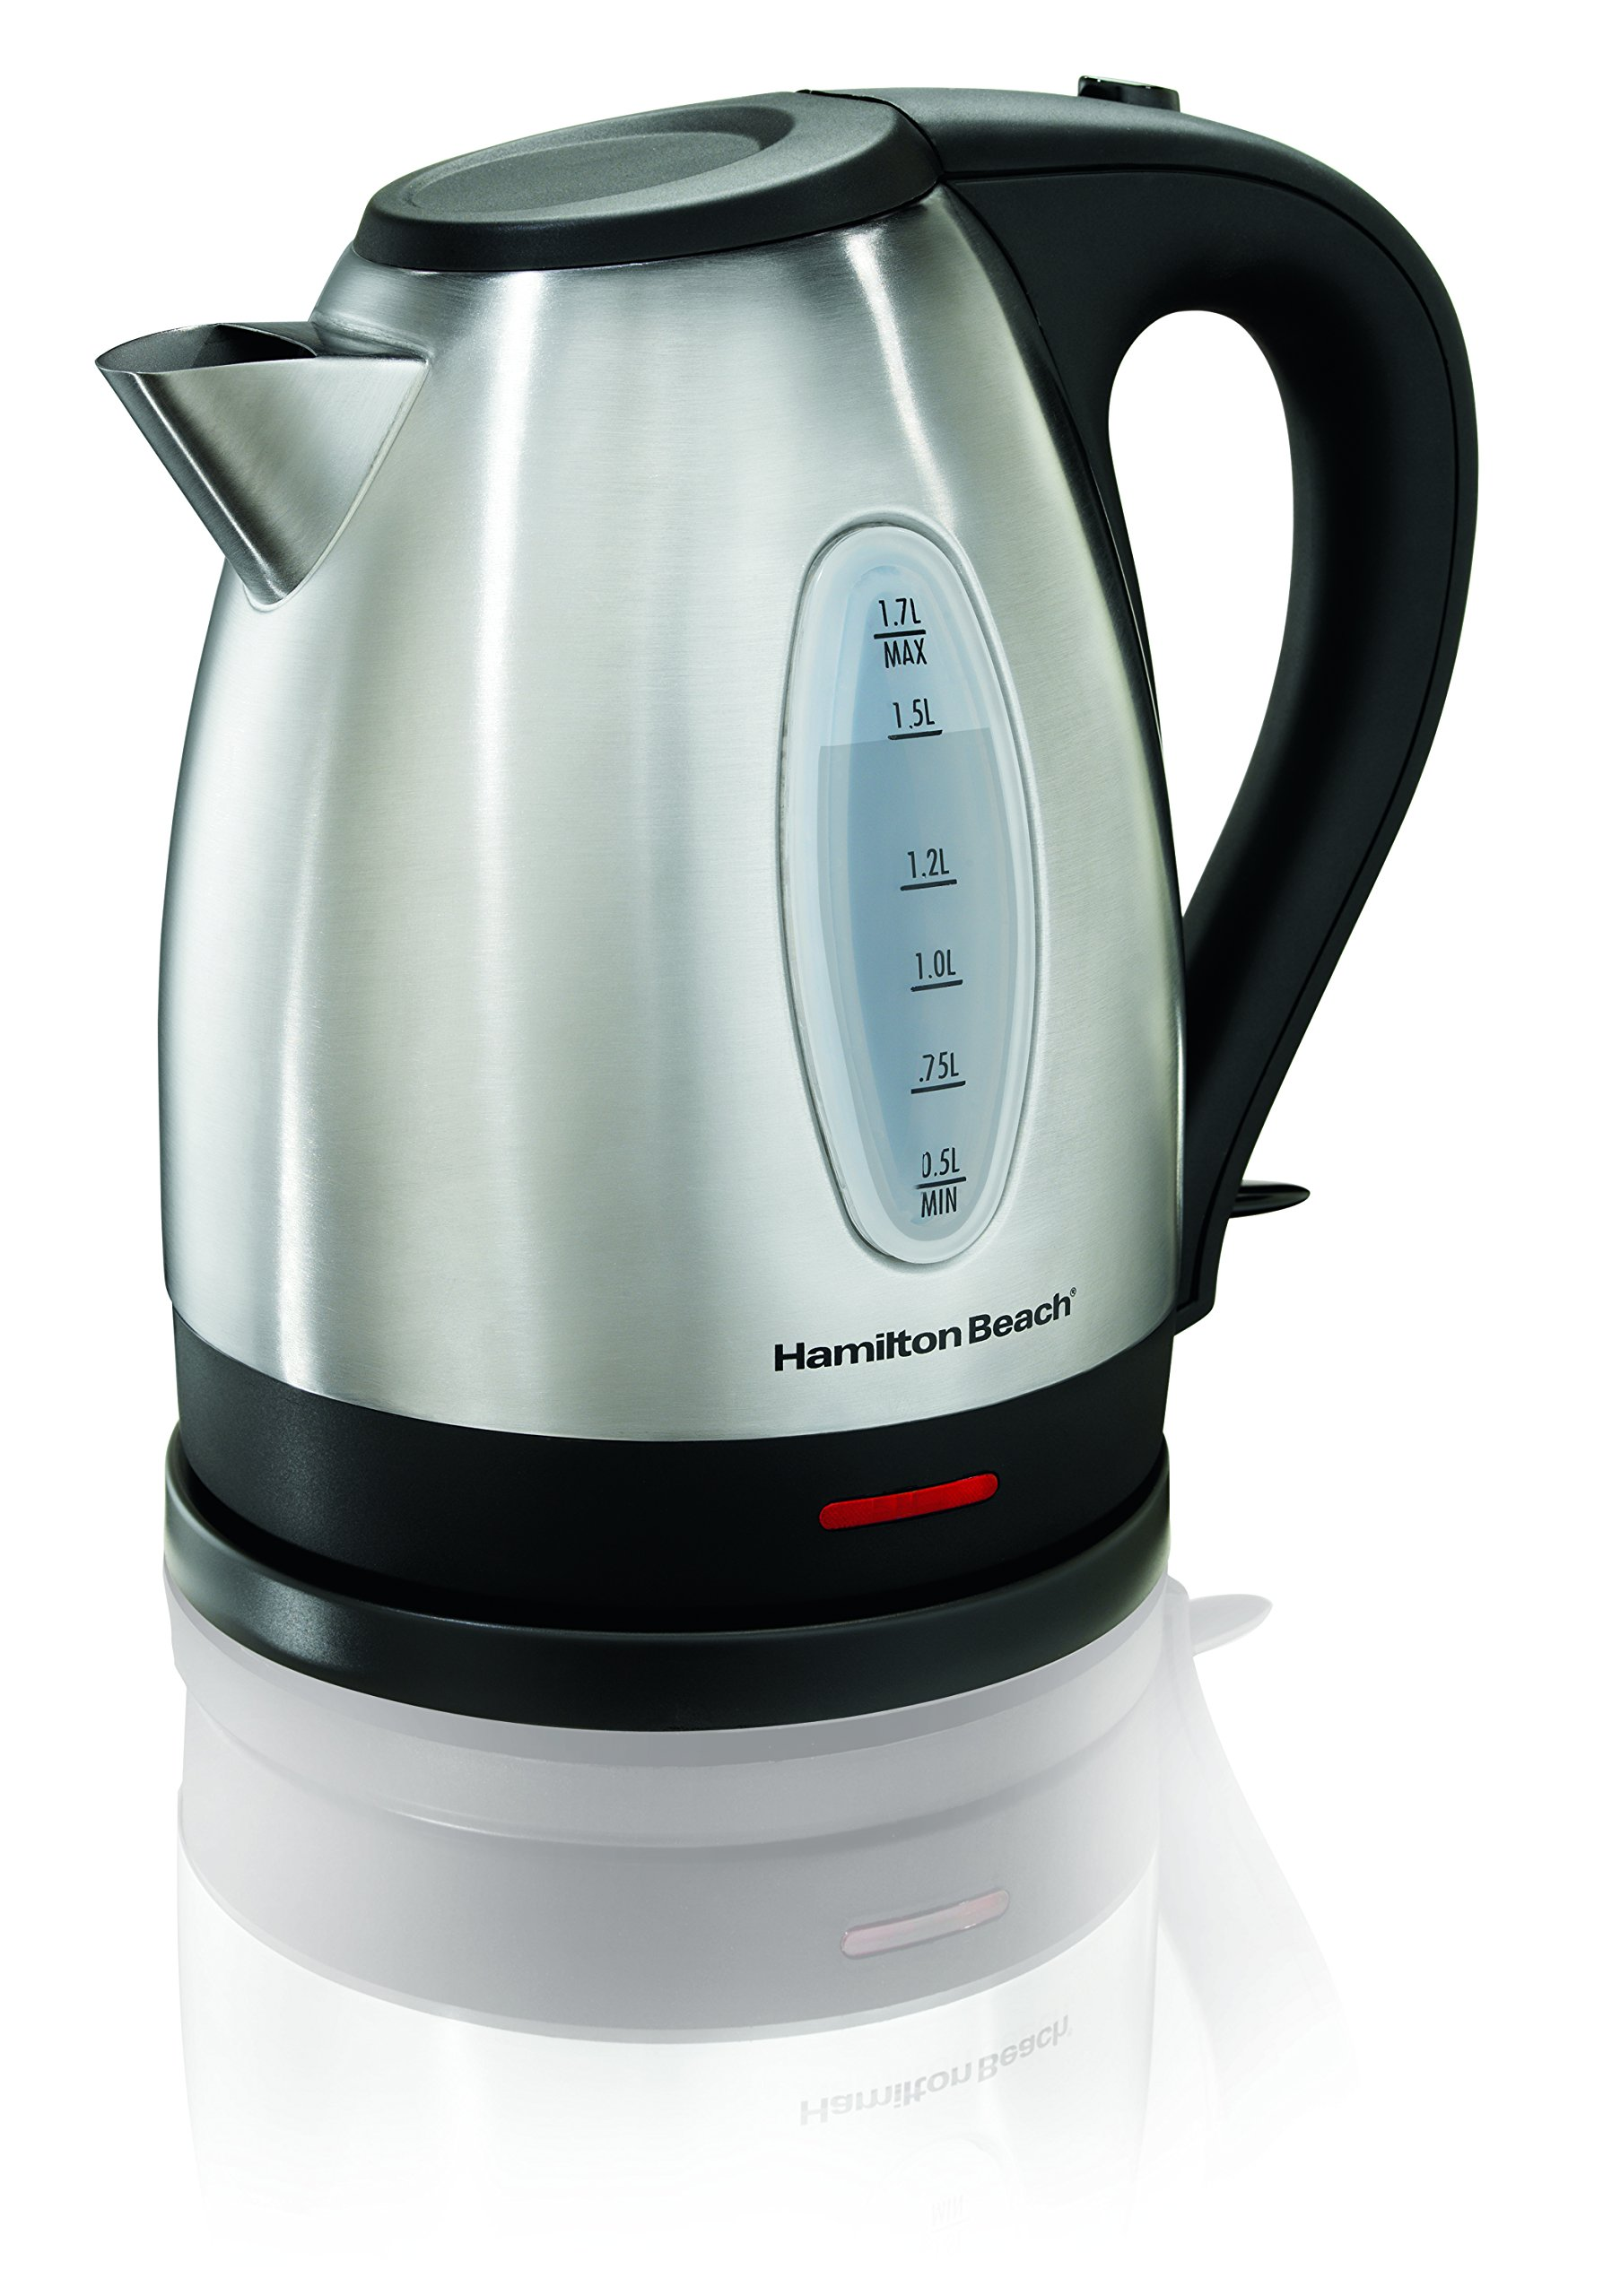 Hamilton Beach 40880C Electric Kettle, 1.7 L, Stainless Steel/Silver